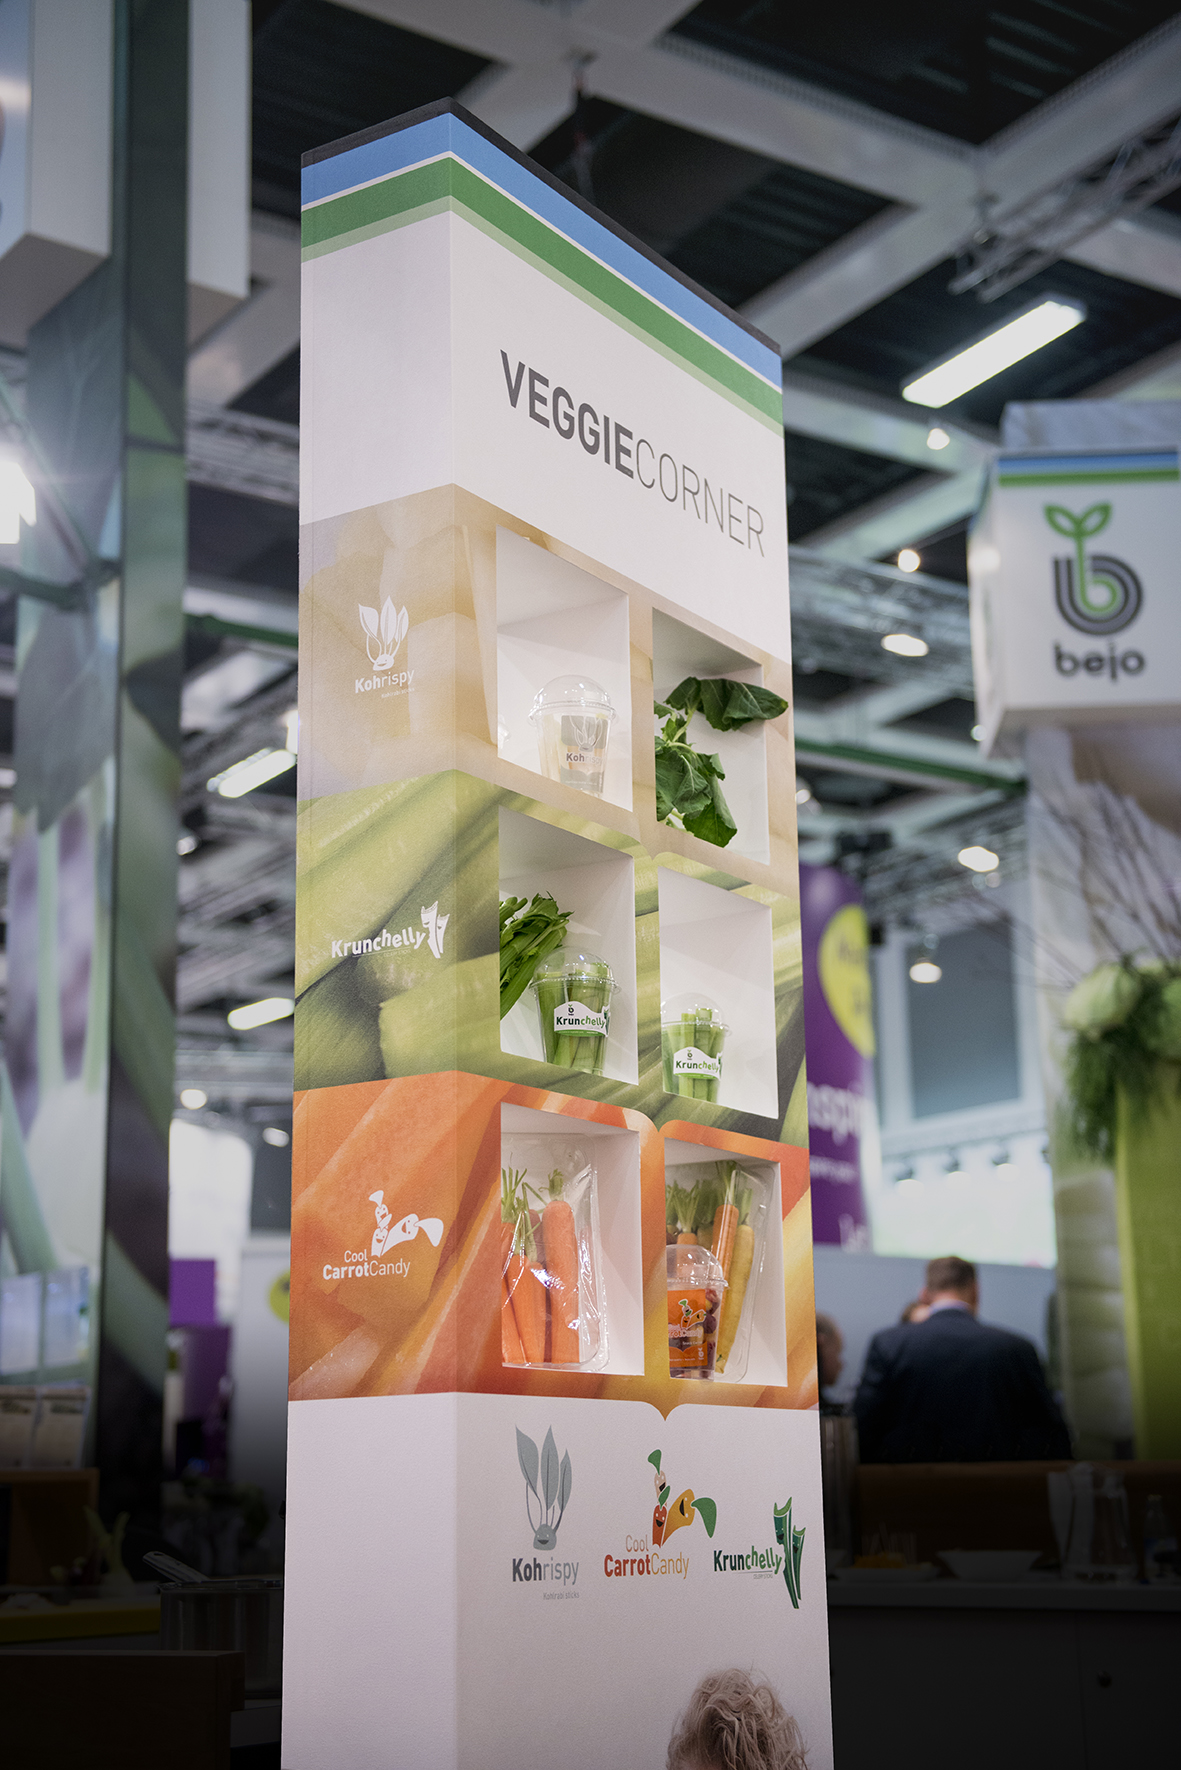 Bejo's stand at Fruit Logistica focused on 6 concepts around the theme 'Taste, Health and Convenience': Coolwrap, Delicioni (fresh onion), Kohrispy (kohlrabi sticks), Cool Carrot Candy (snack carrots), Veggie corner and organic seed.